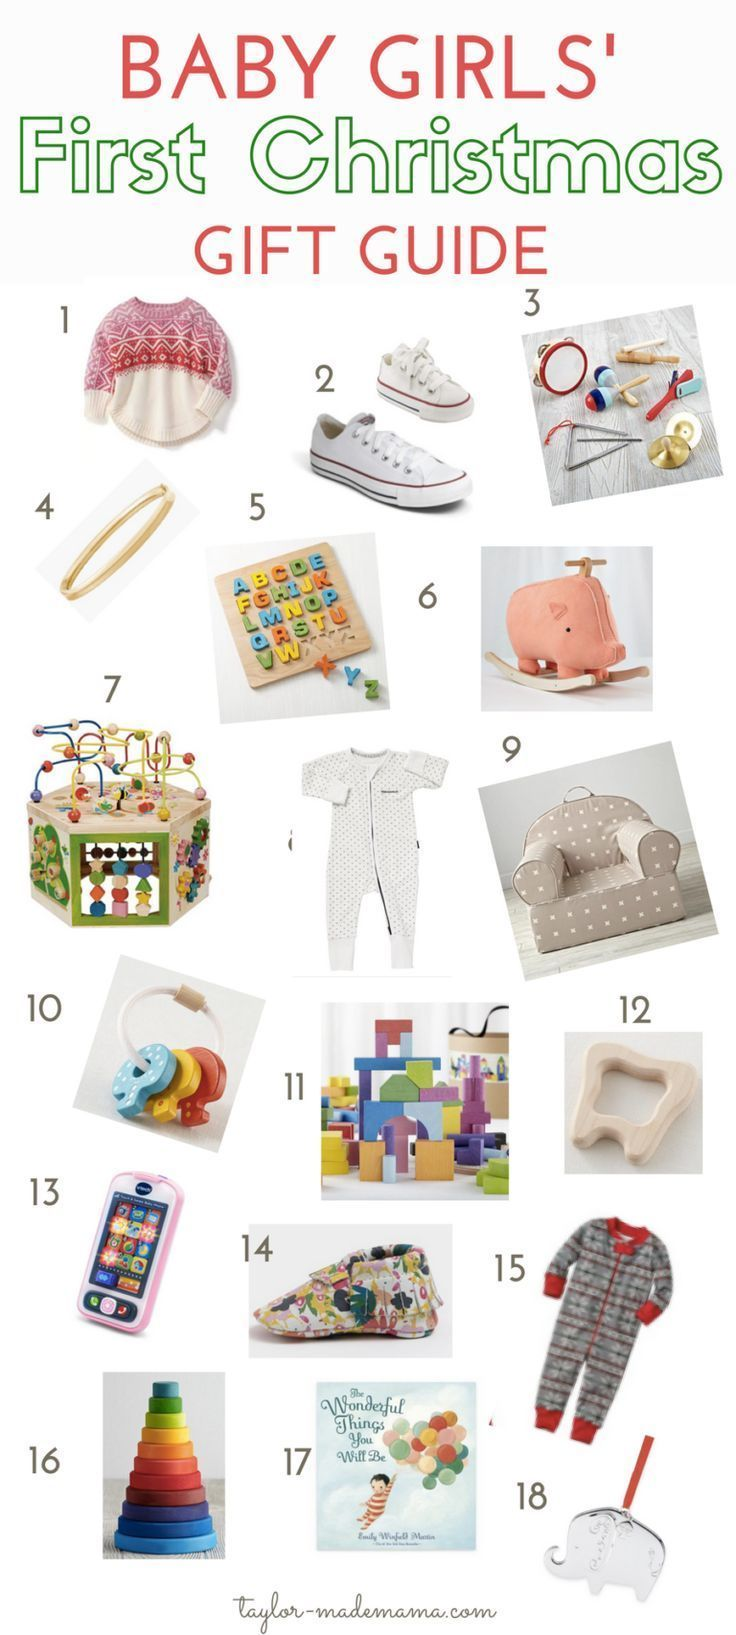 The Perfect First Christmas Gift Guide For A Baby Girl